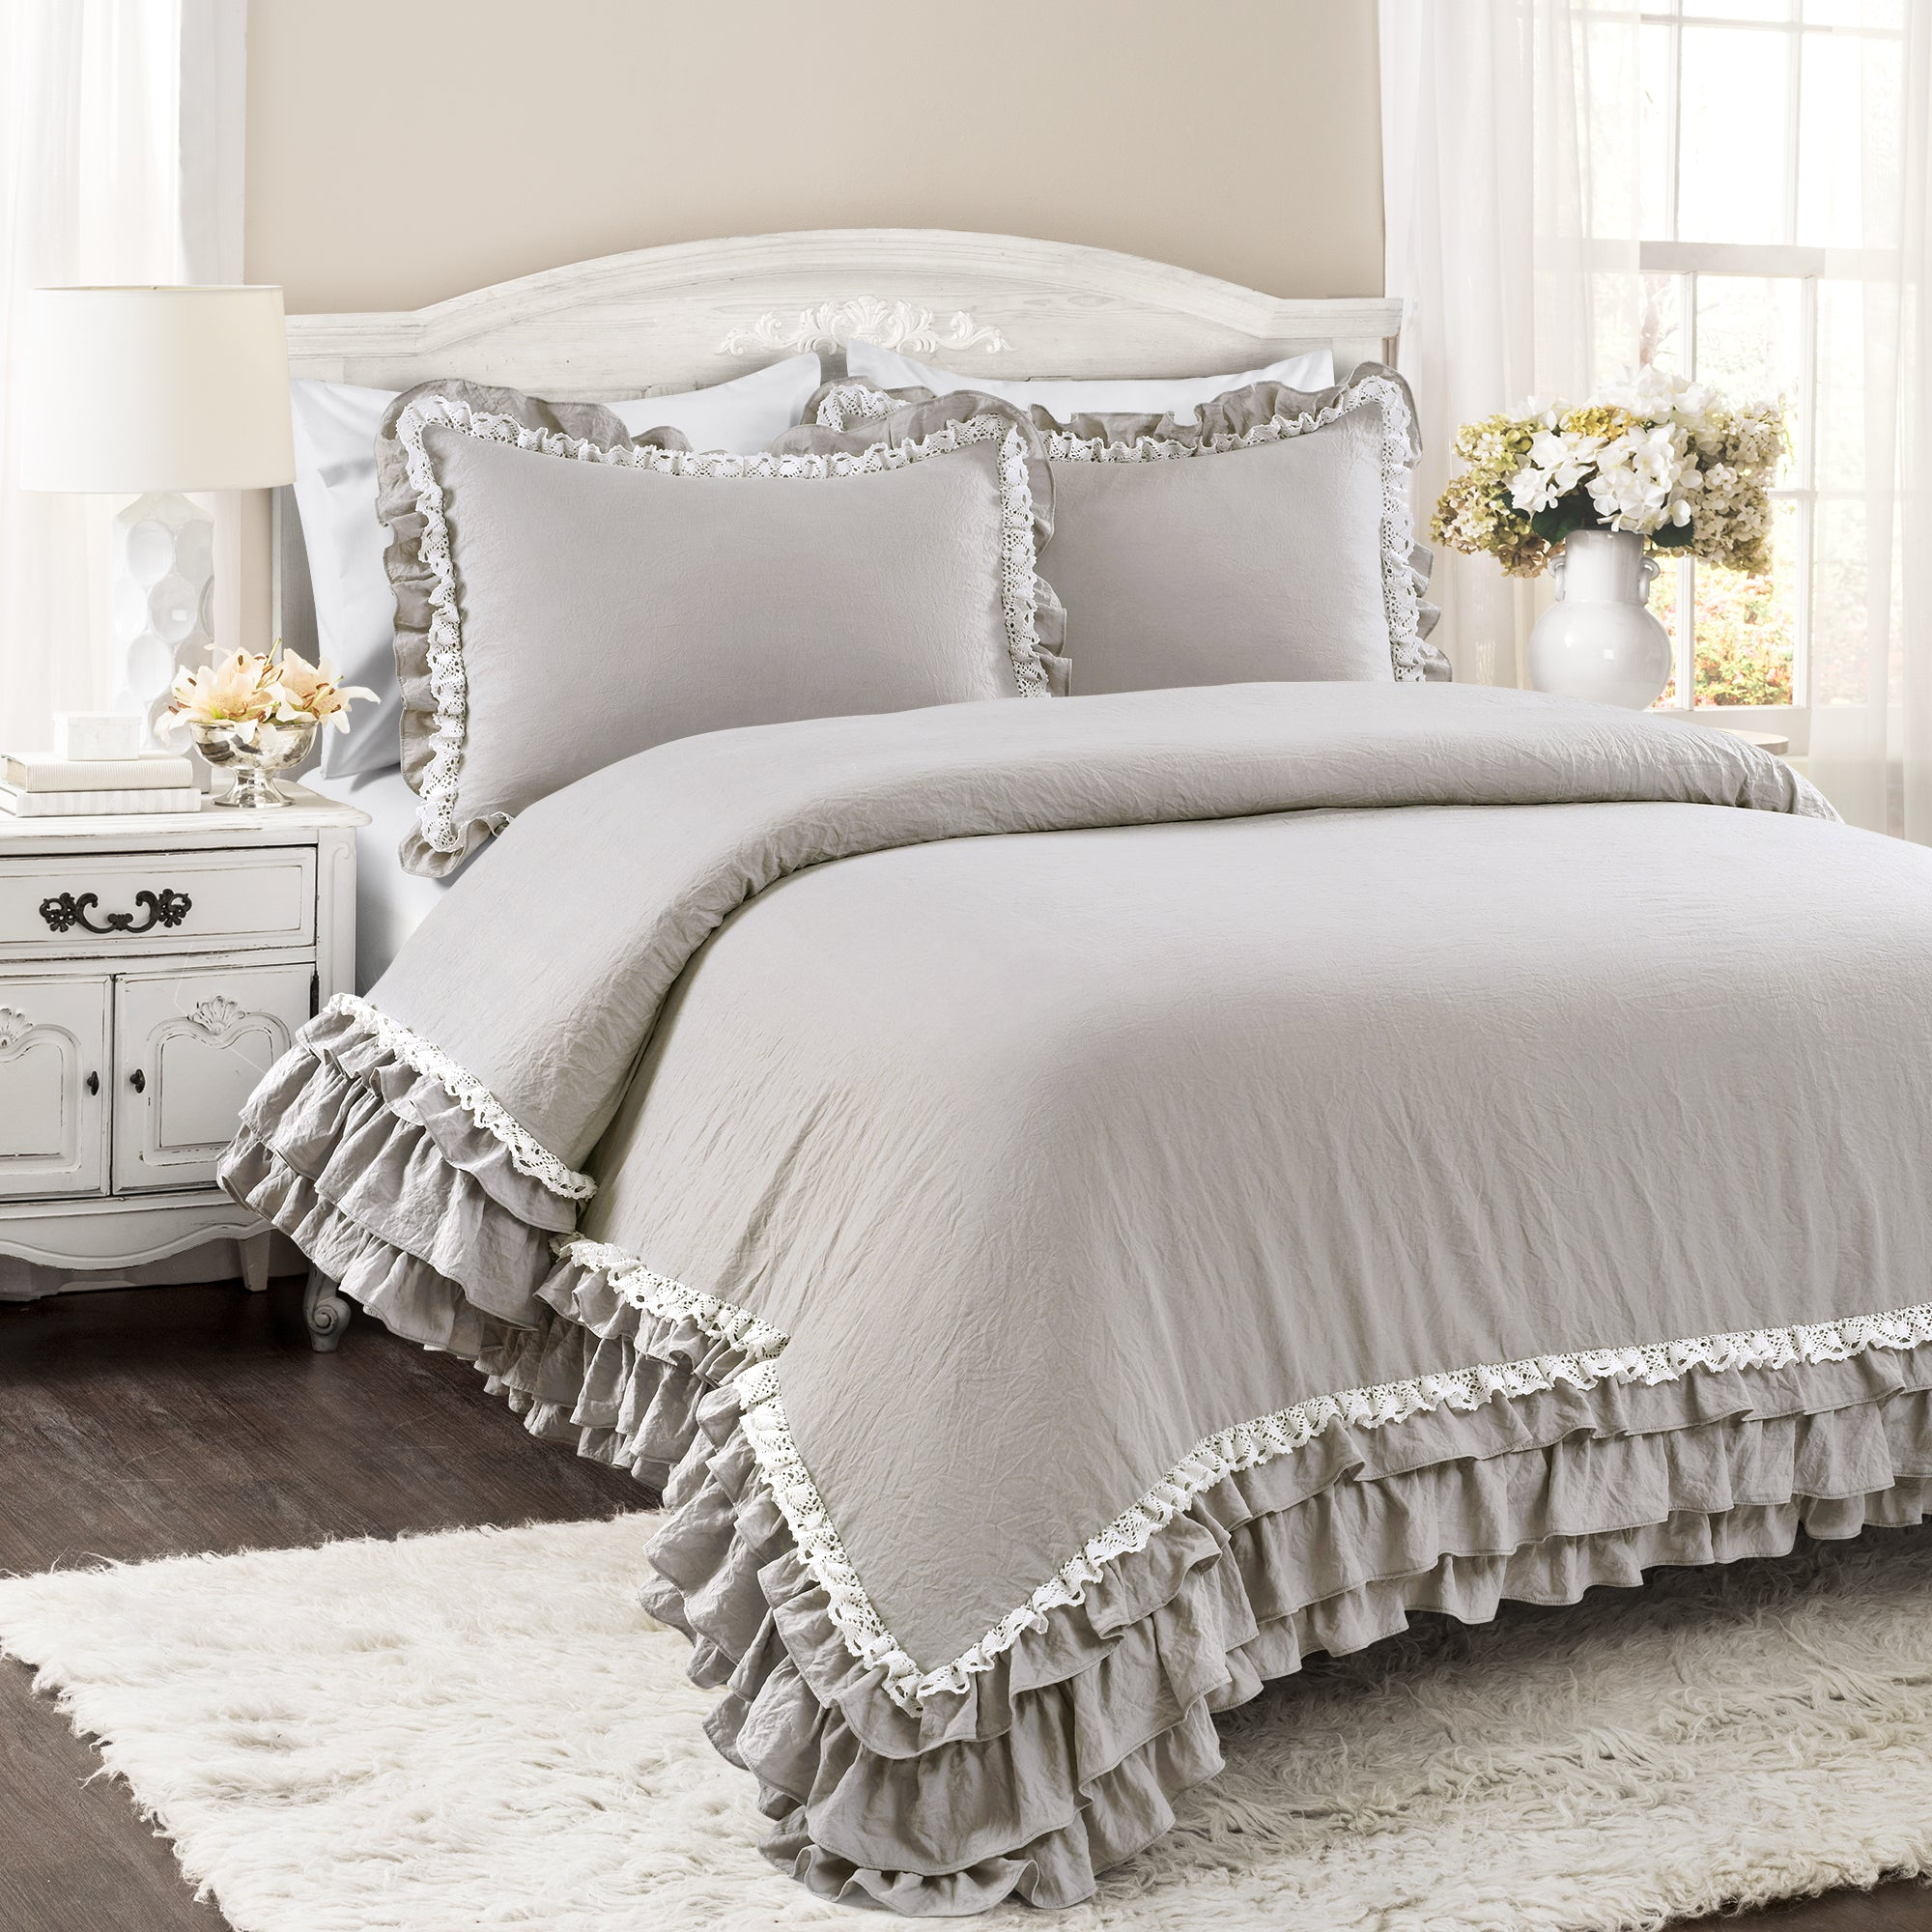 Ella Shabby Chic Ruffle Lace 3 Piece Comforter Set Lush Decor Www Lushdecor Com Lushdecor